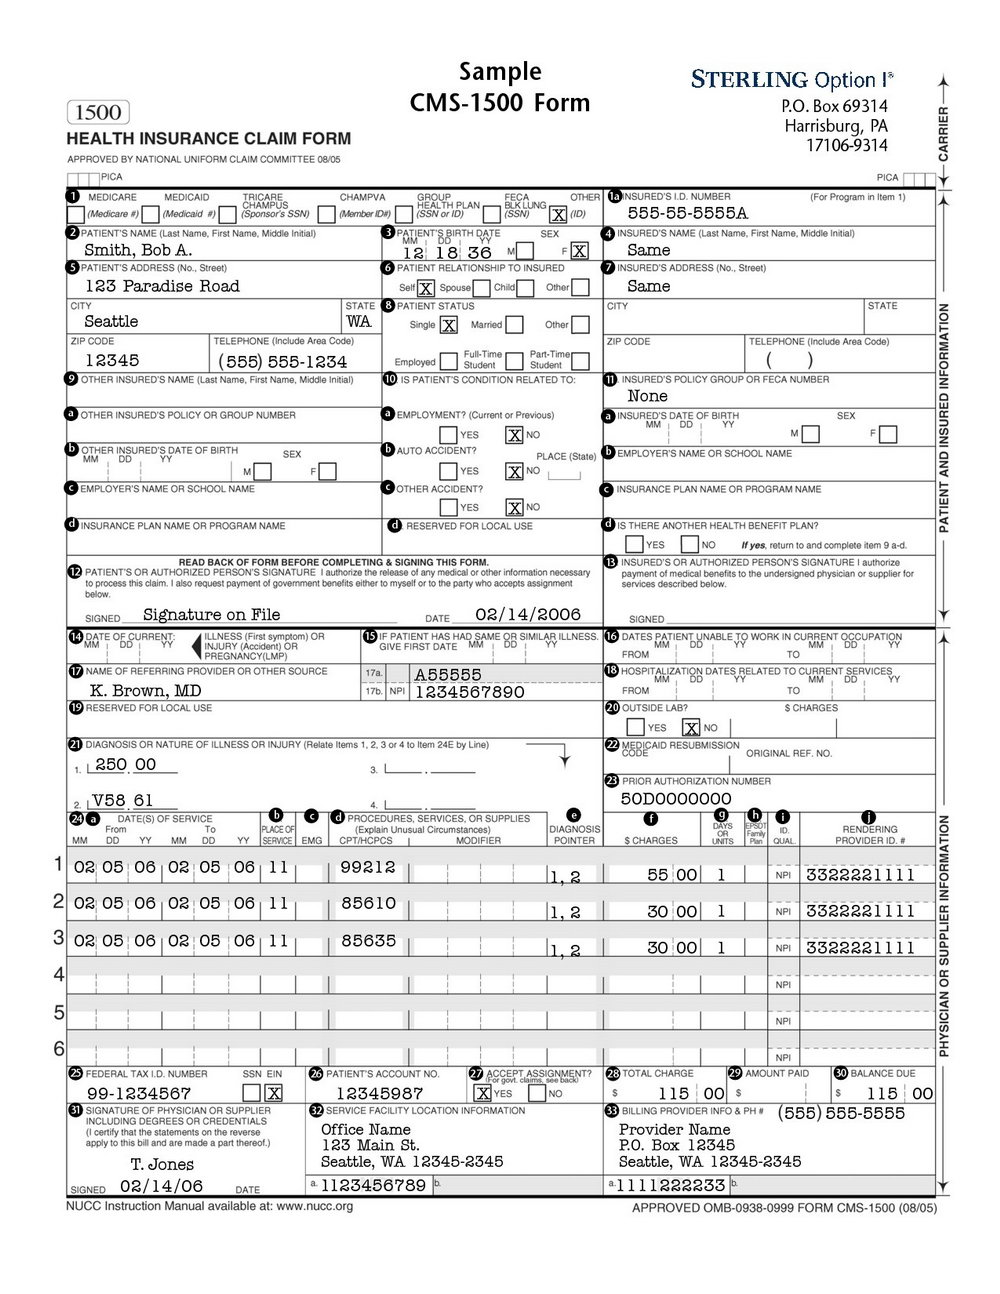 Cms 1500 Form Pdf Download